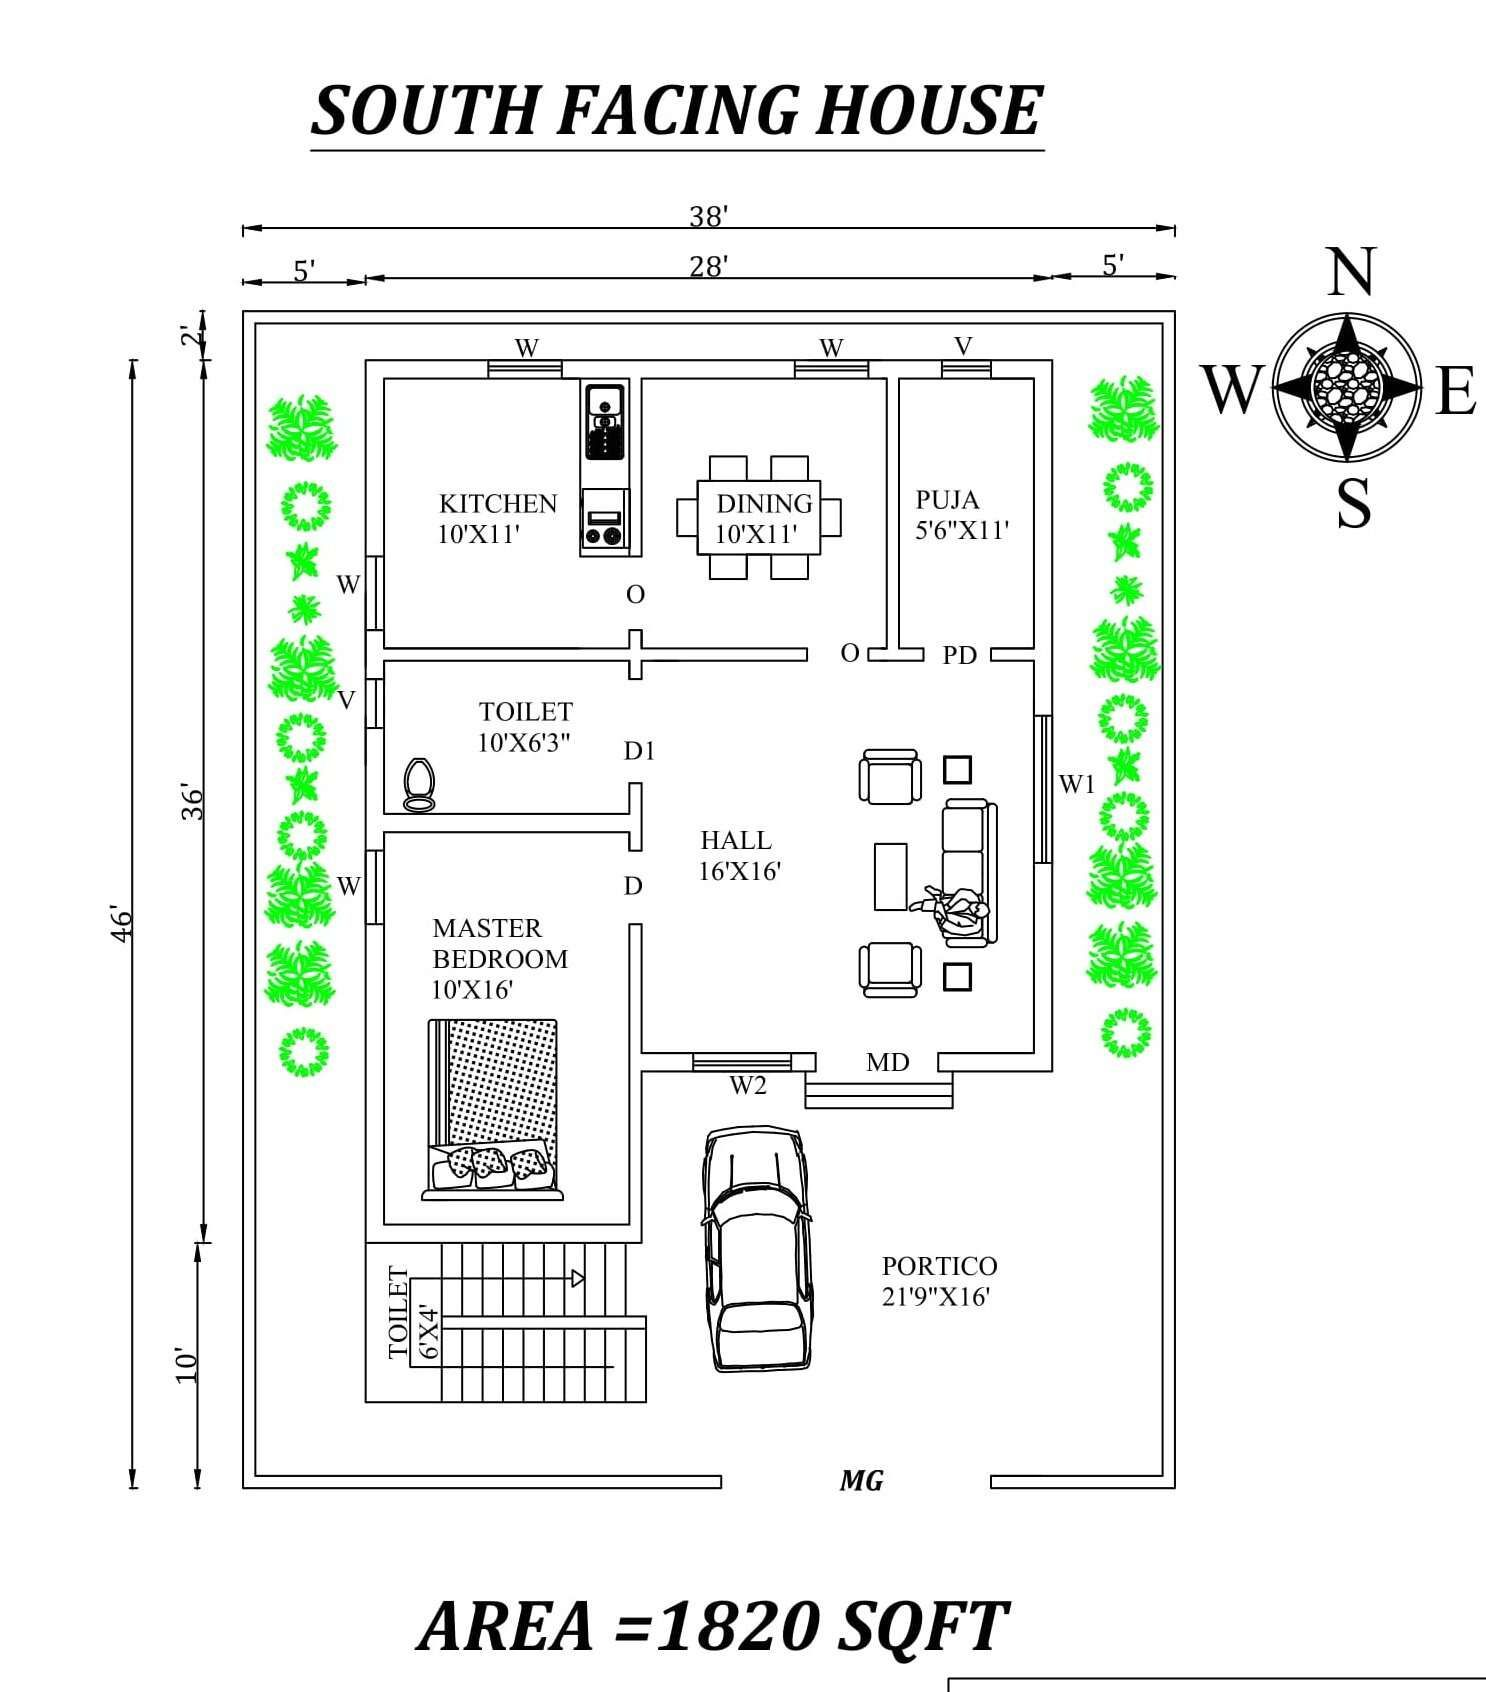 28 X36 Single bhk south facing House Plan Layout As Per Vastu Shastra Autocad DWG and Pdf file details